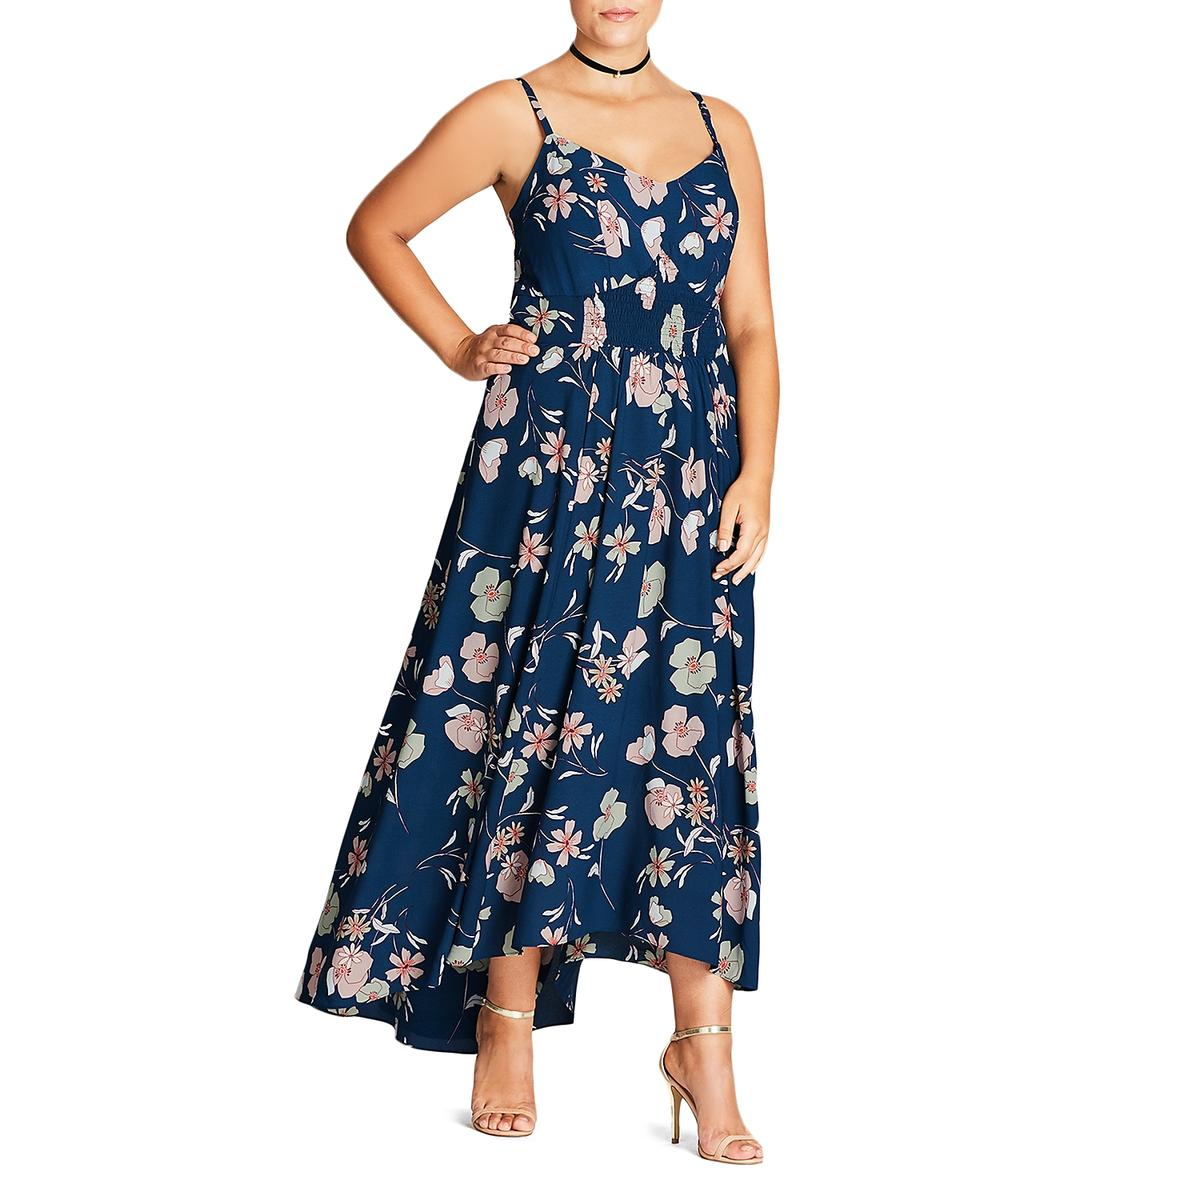 Details about City Chic Womens Smocked Floral Hi-Low Maxi Dress Plus BHFO  2902 051a03695